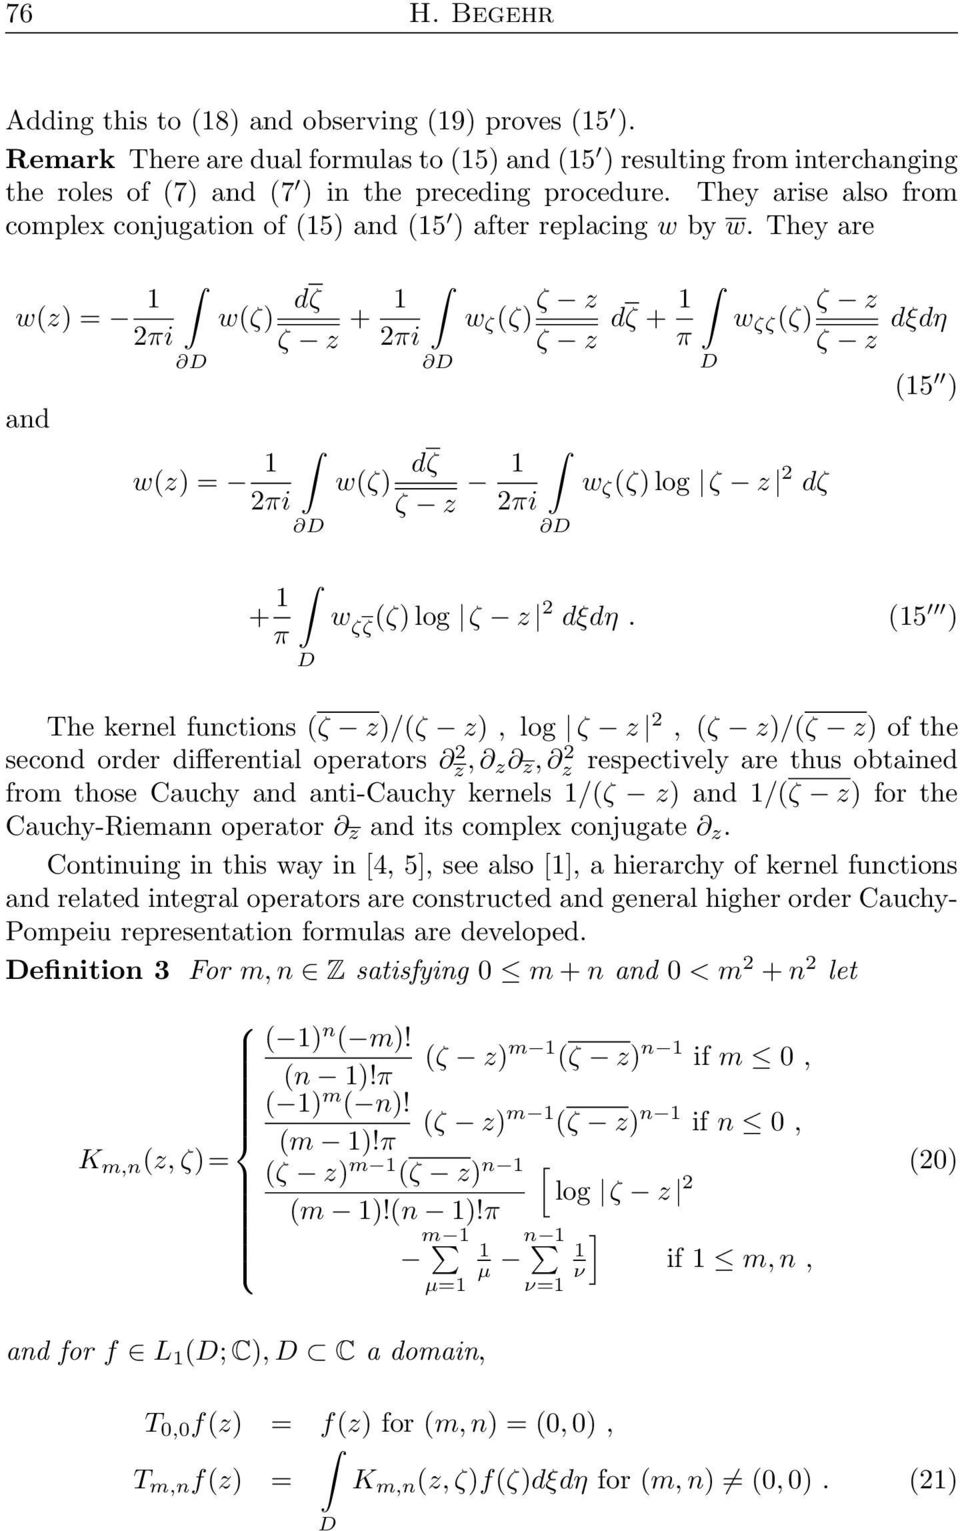 (5 ) The kernel functions ( z)/( z), log z 2, ( z)/( z) of the second order differential operators z 2, z z, z 2 respectively are thus obtained from those Cauchy and anti-cauchy kernels /( z) and /(